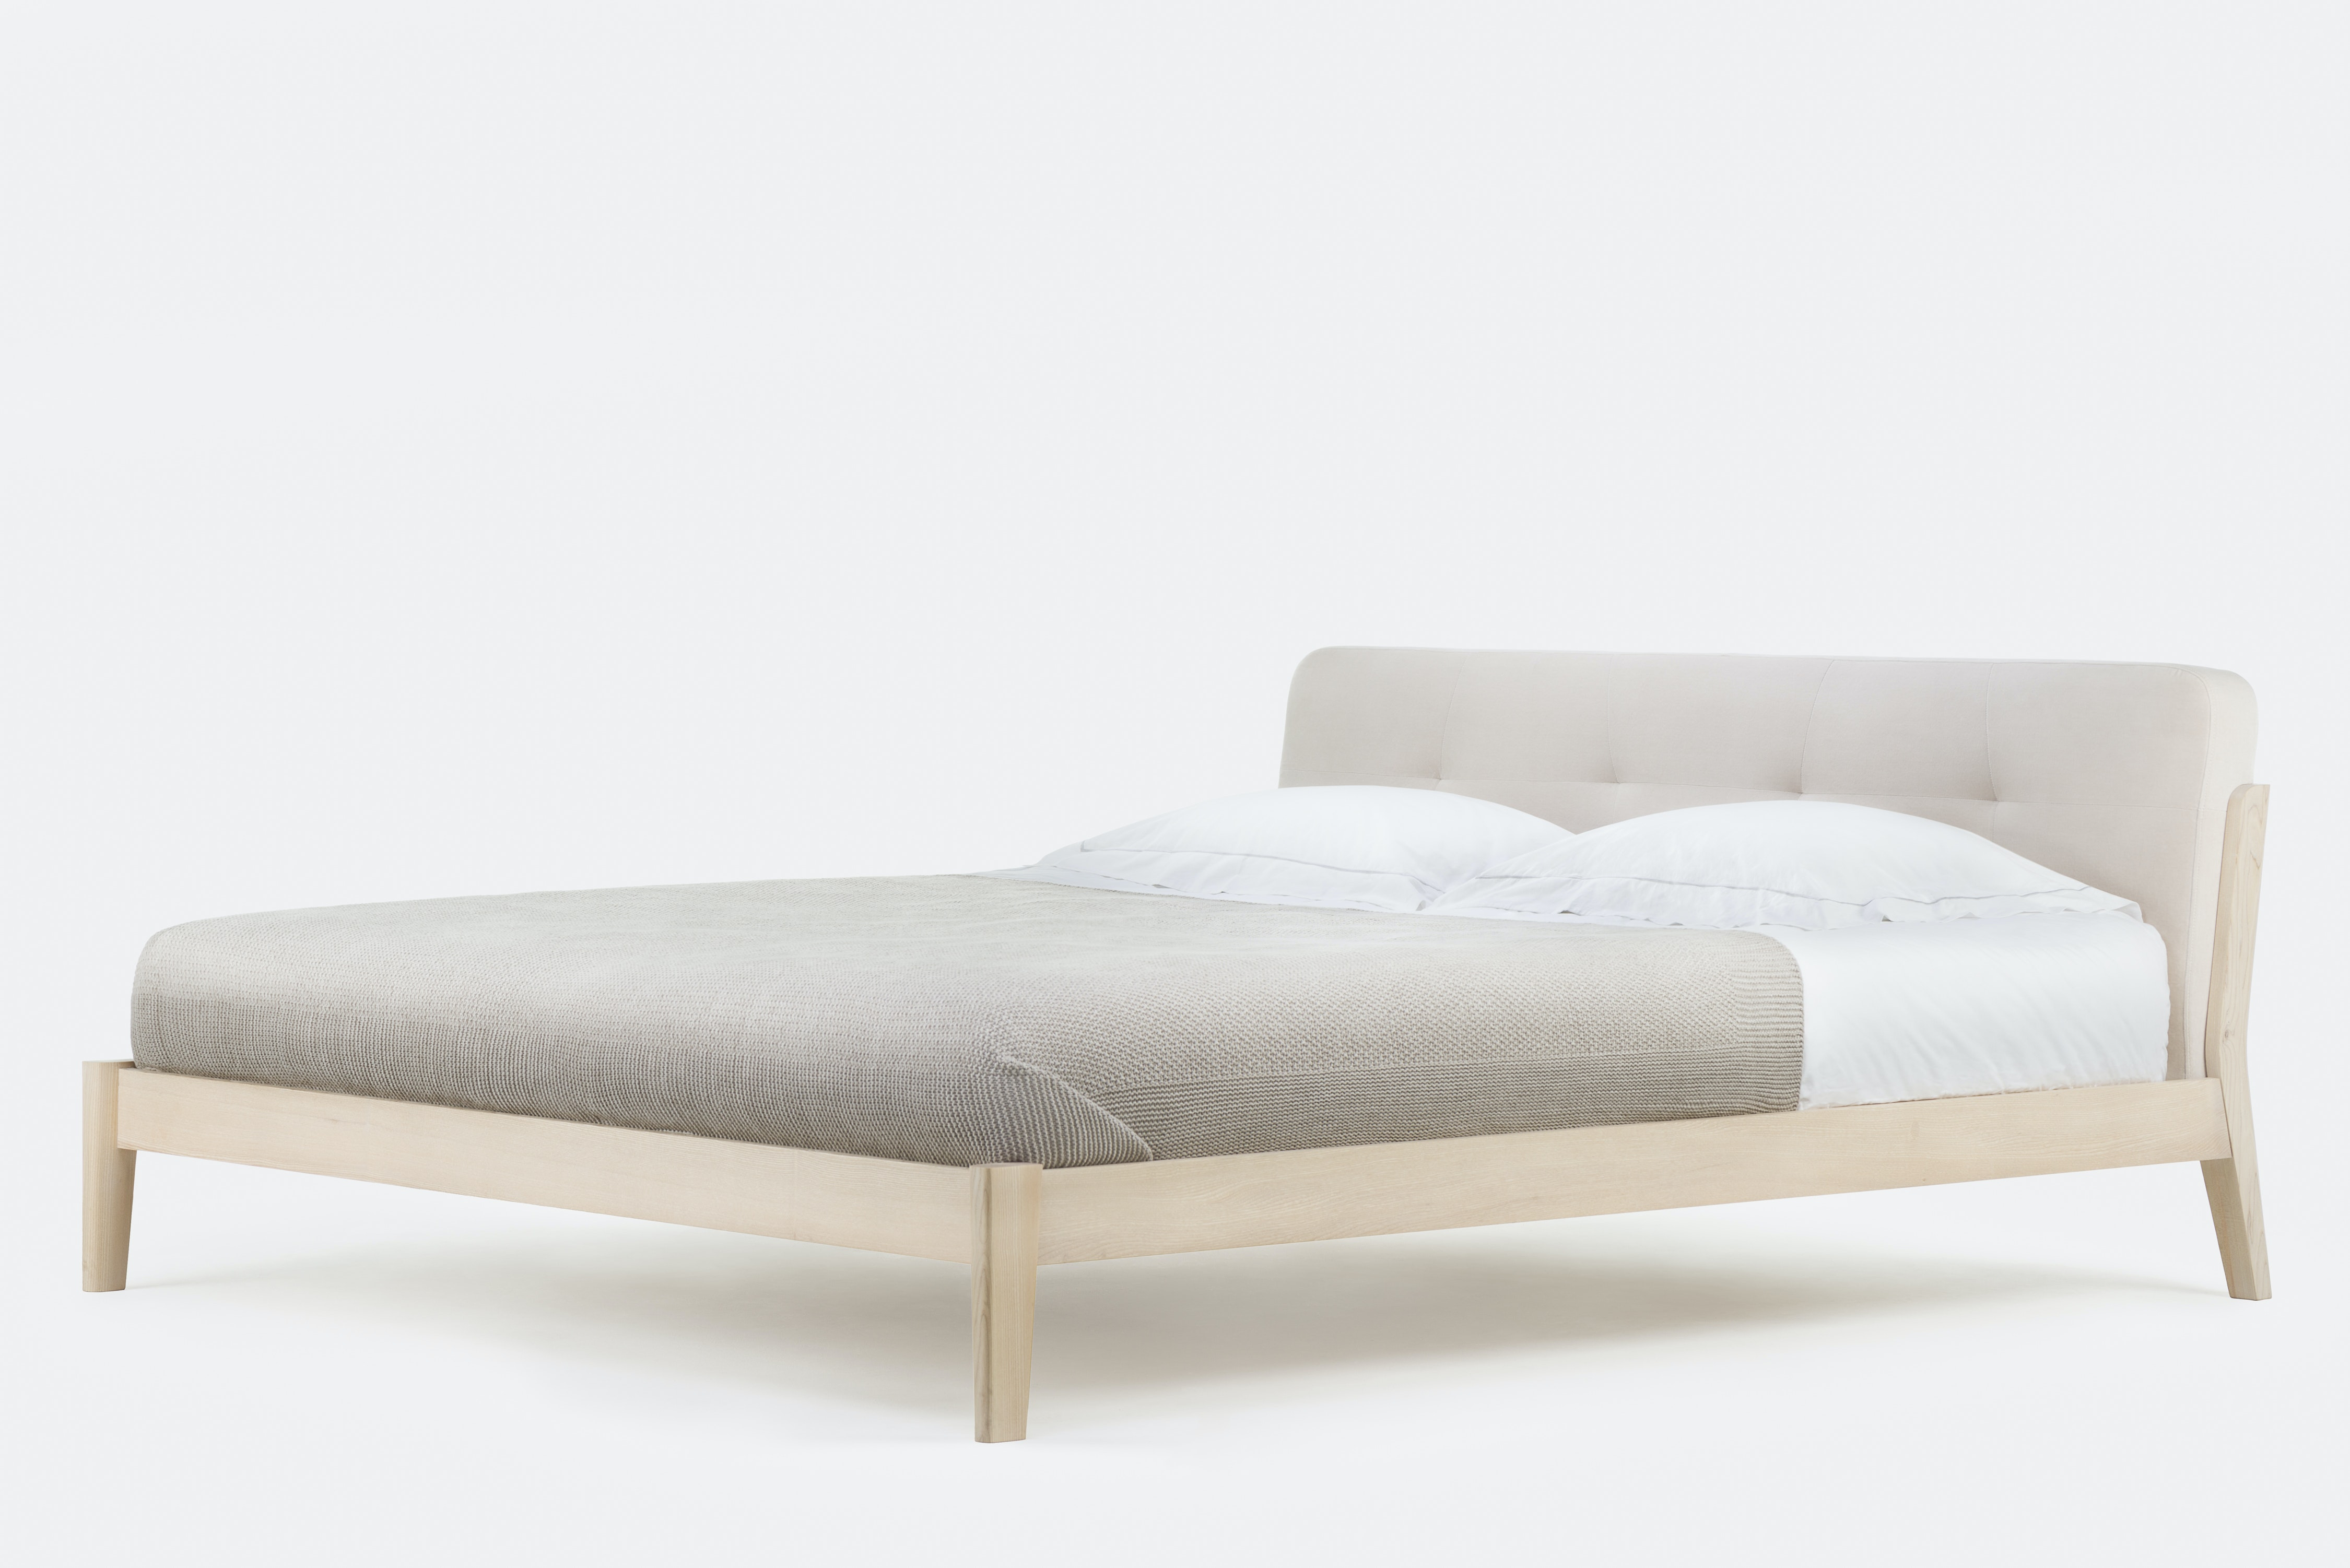 Capo Bed By Neri Hu